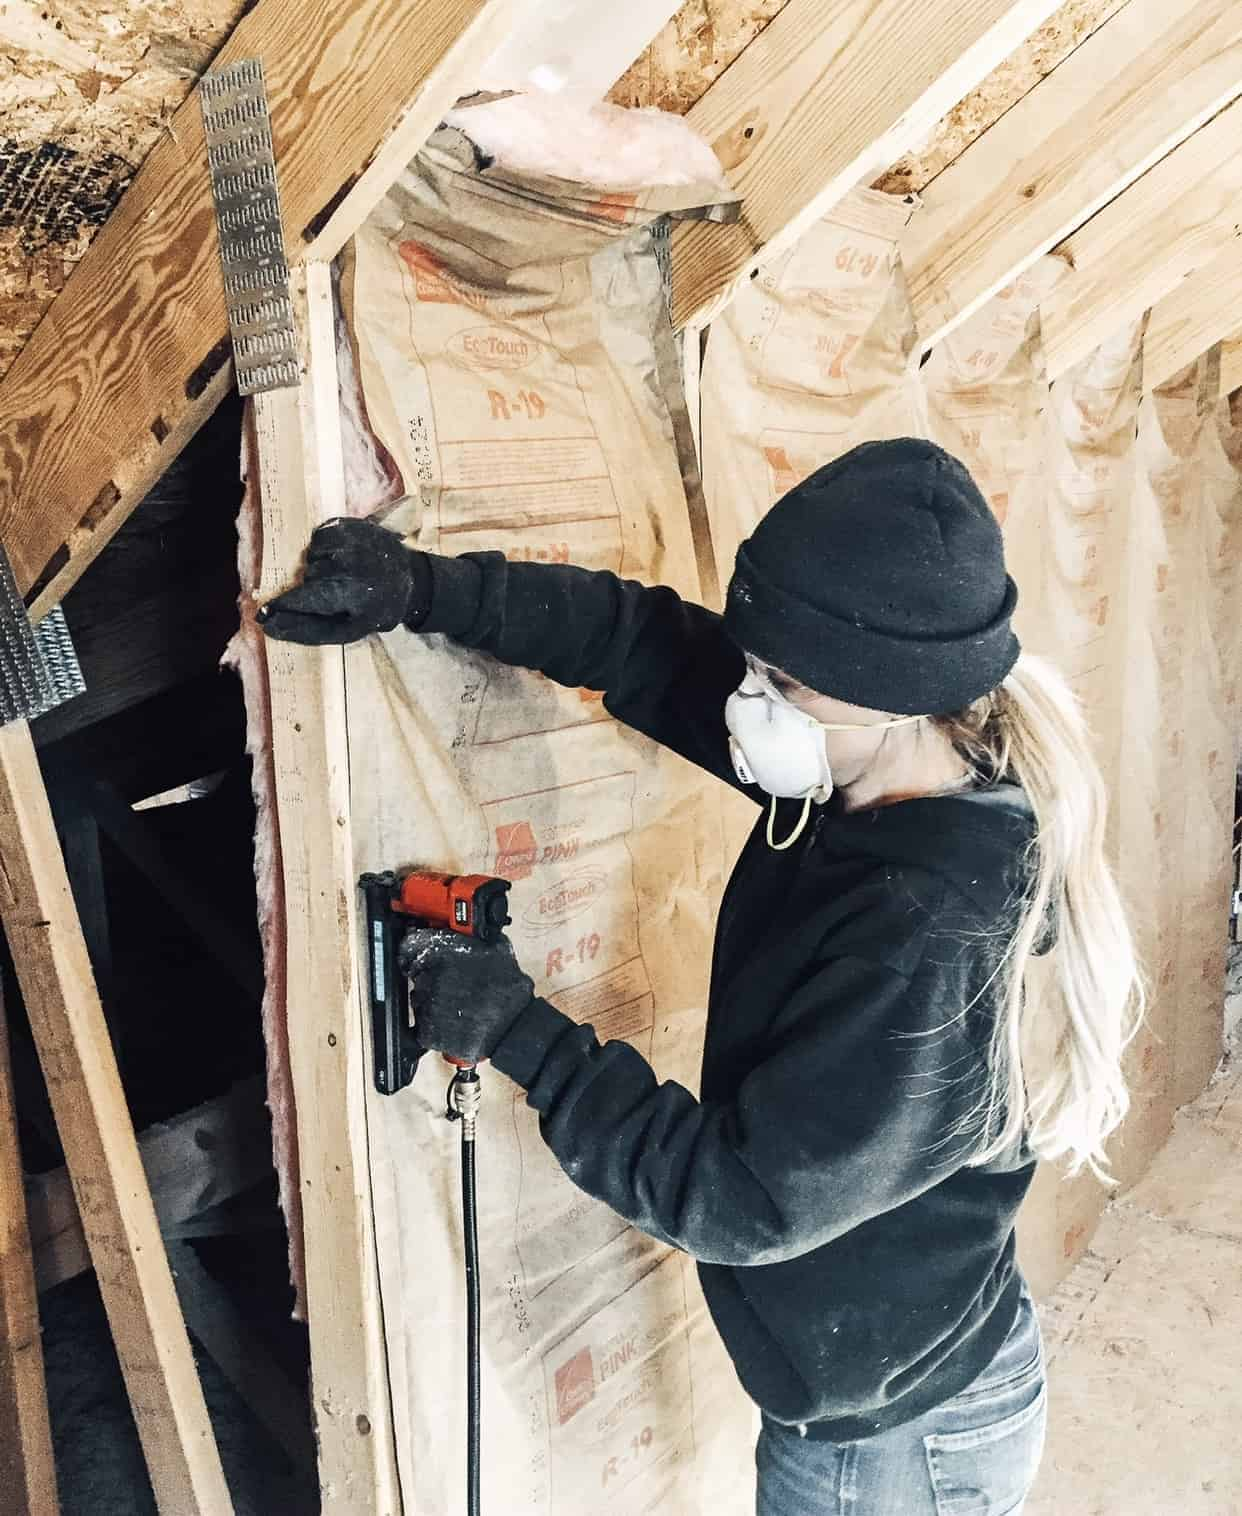 Woman installing insulation in loft area with open walls